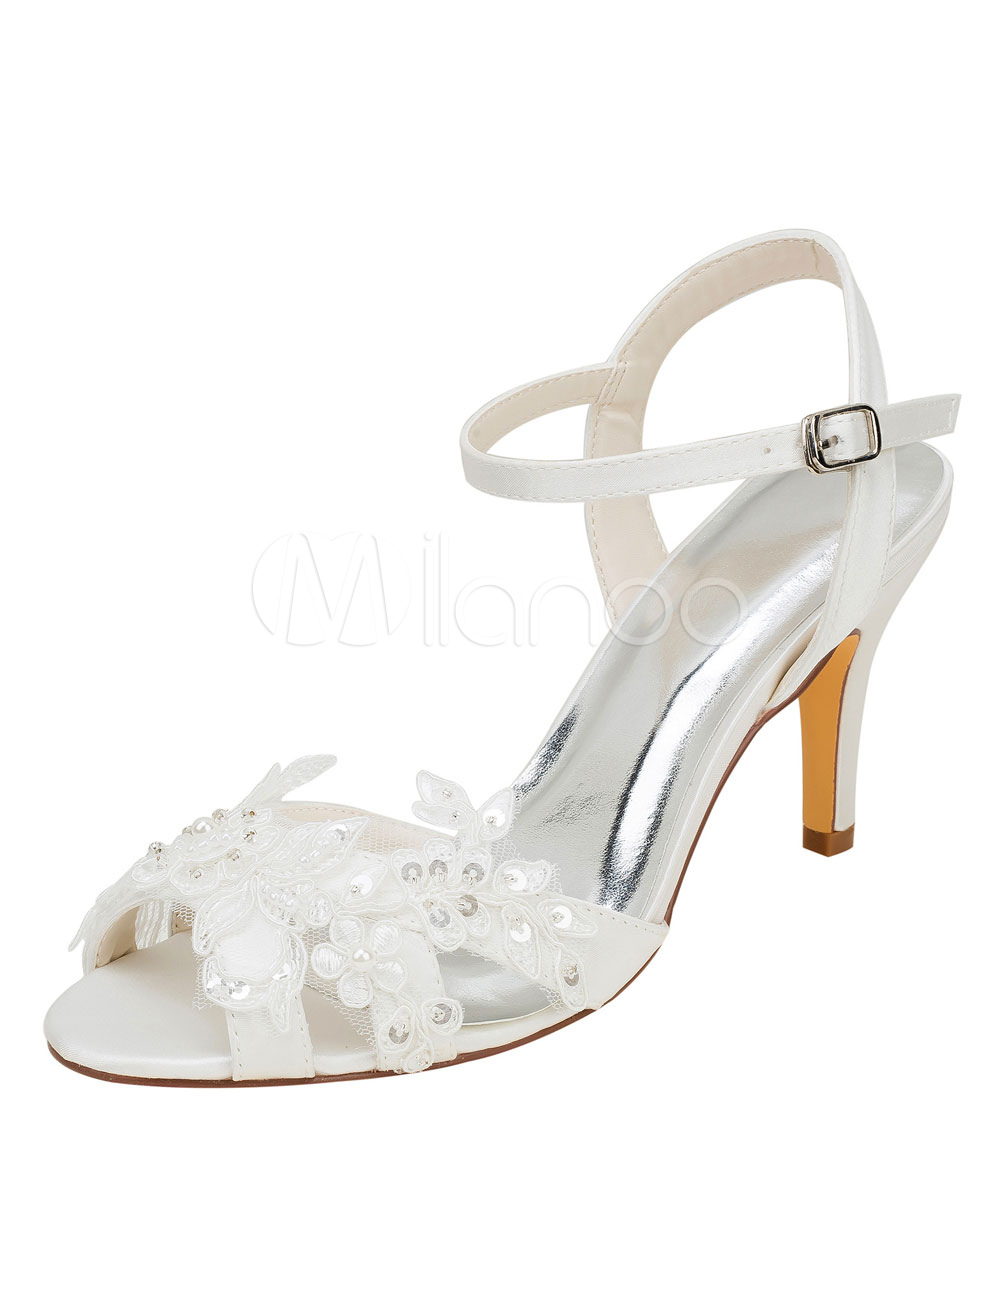 Buy Ivory Wedding Shoes High Heel Sequined Peep Toe Stiletto Bridal Sandals for $53.09 in Milanoo store